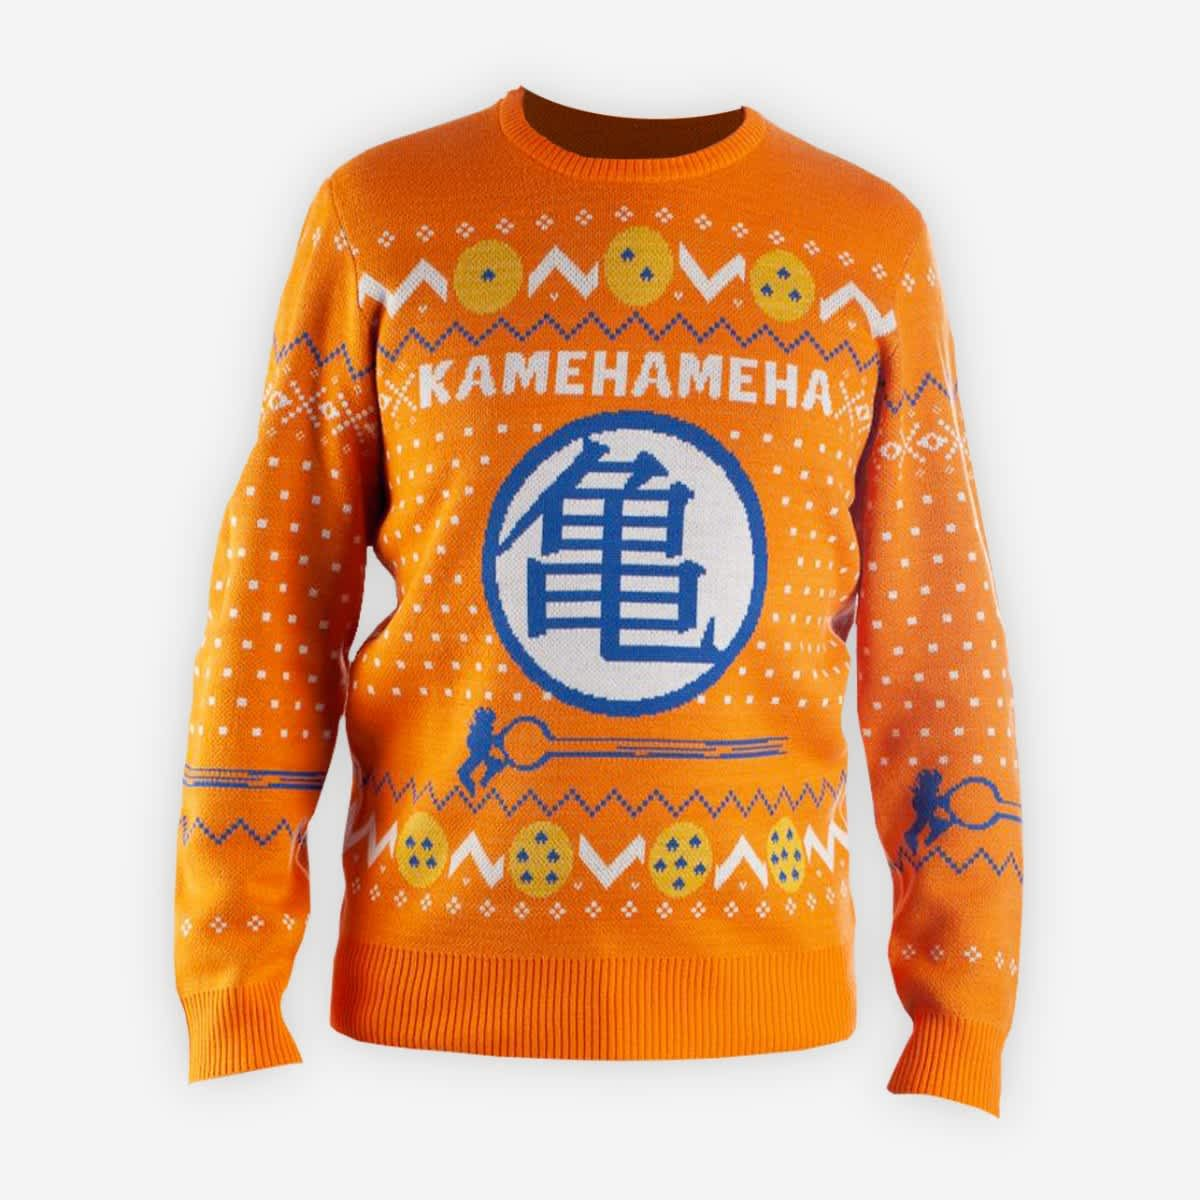 Reach Your Final Form This Holiday Season With Our Dbz Sweater Because You Know What They Say Orange Is The Dragon Ball Super Funny Holiday Sweater Sweaters